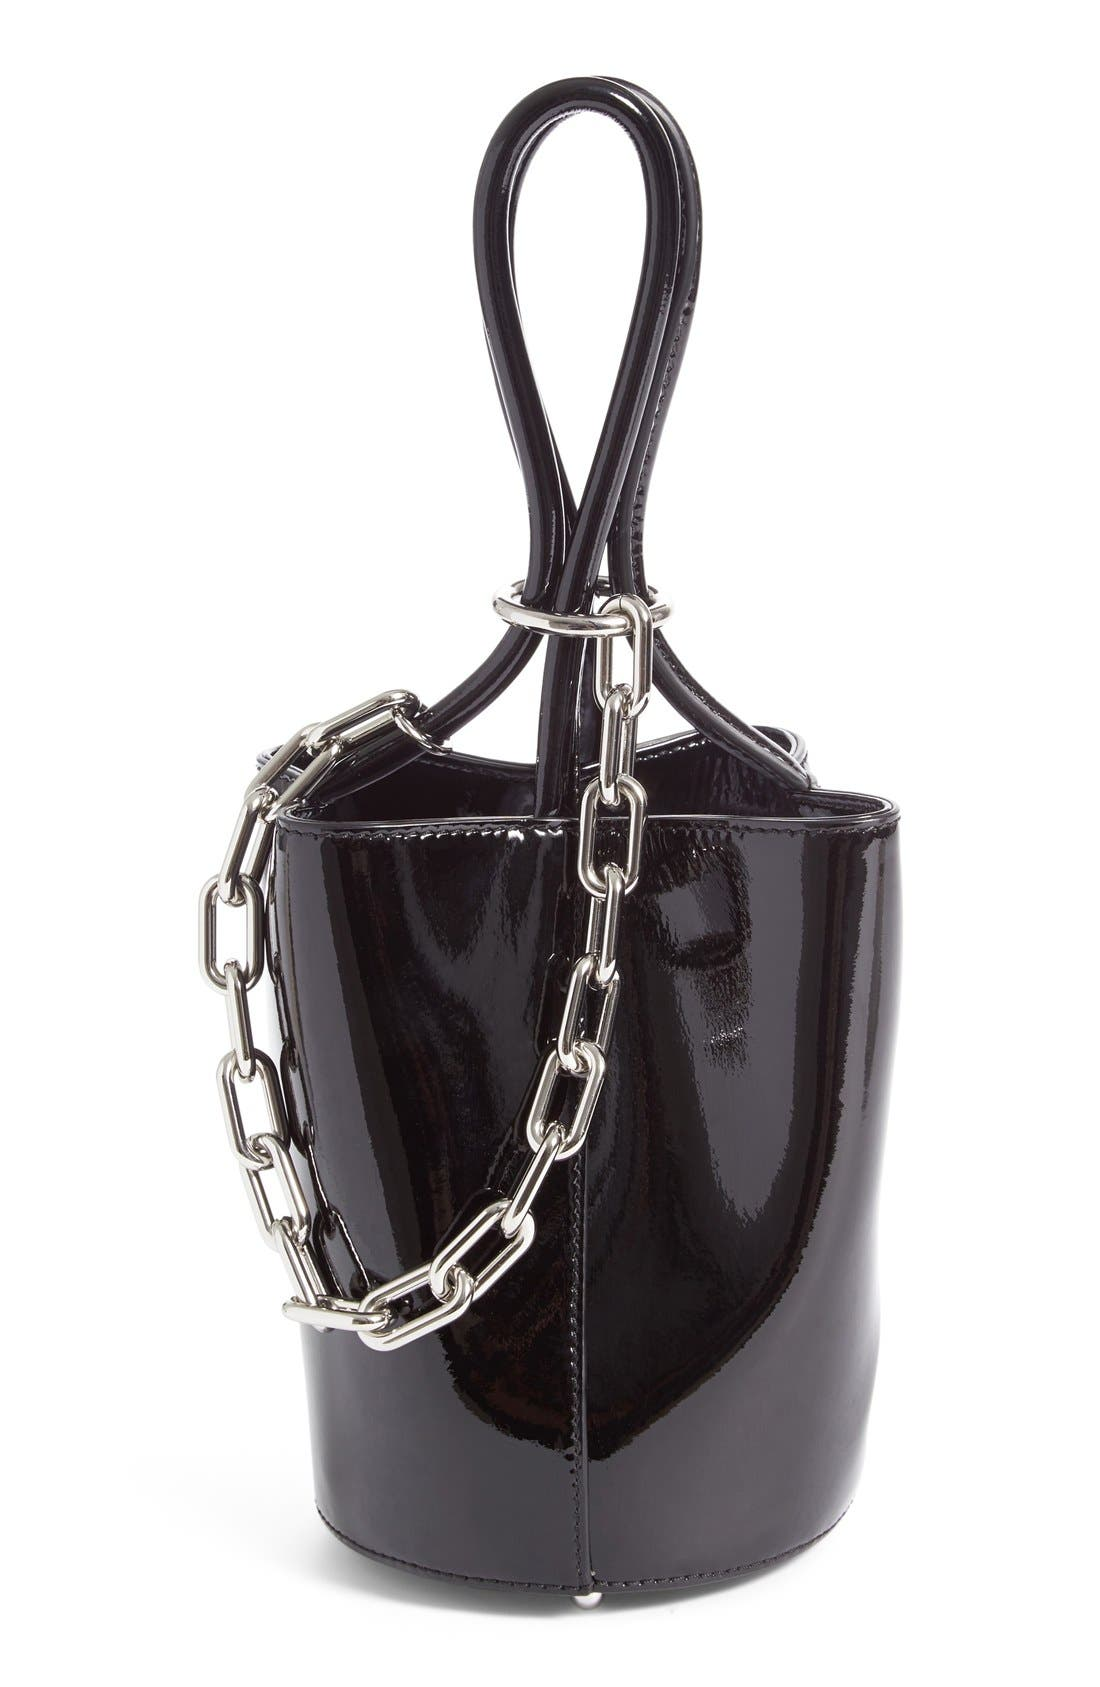 Alternate Image 1 Selected - Alexander Wang Mini Roxy Patent Leather Bucket Bag